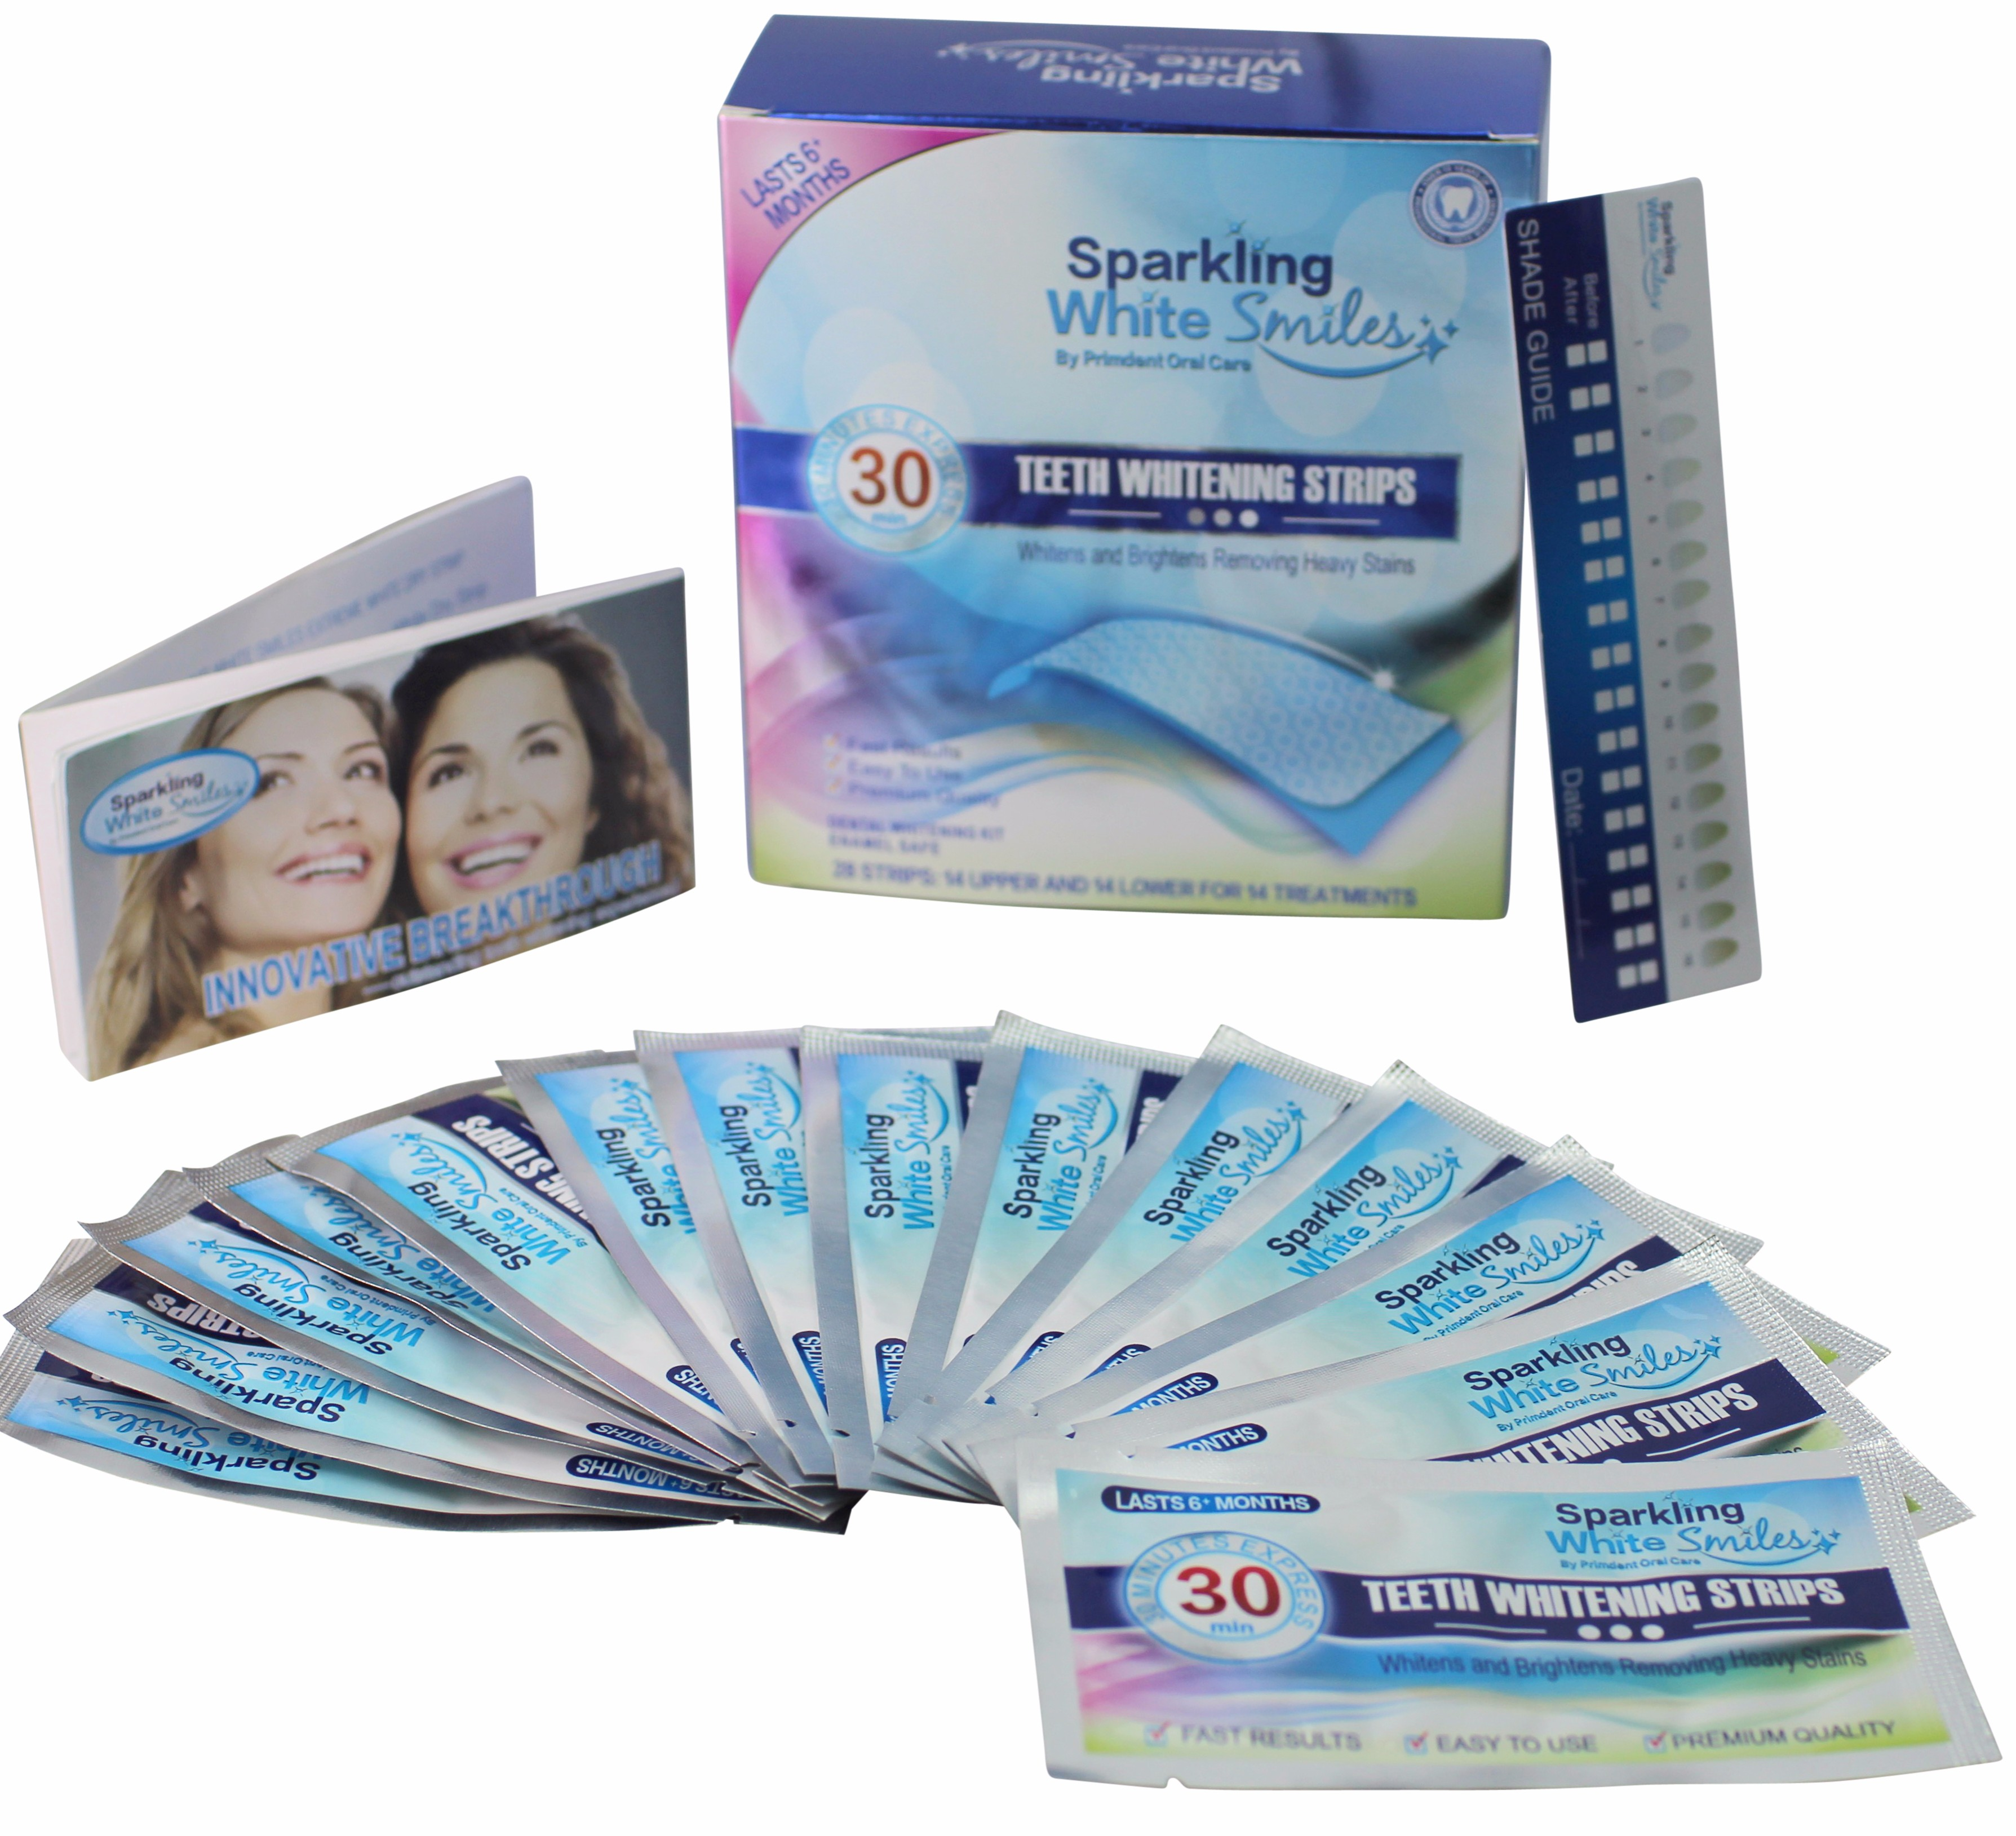 Sparkling White Smiles Professional Teeth Whitening Strips - 28 Teeth White Express Strips - 30 Minute Results - Compare to Big Brands and Save - Removes Years of Stains Fast